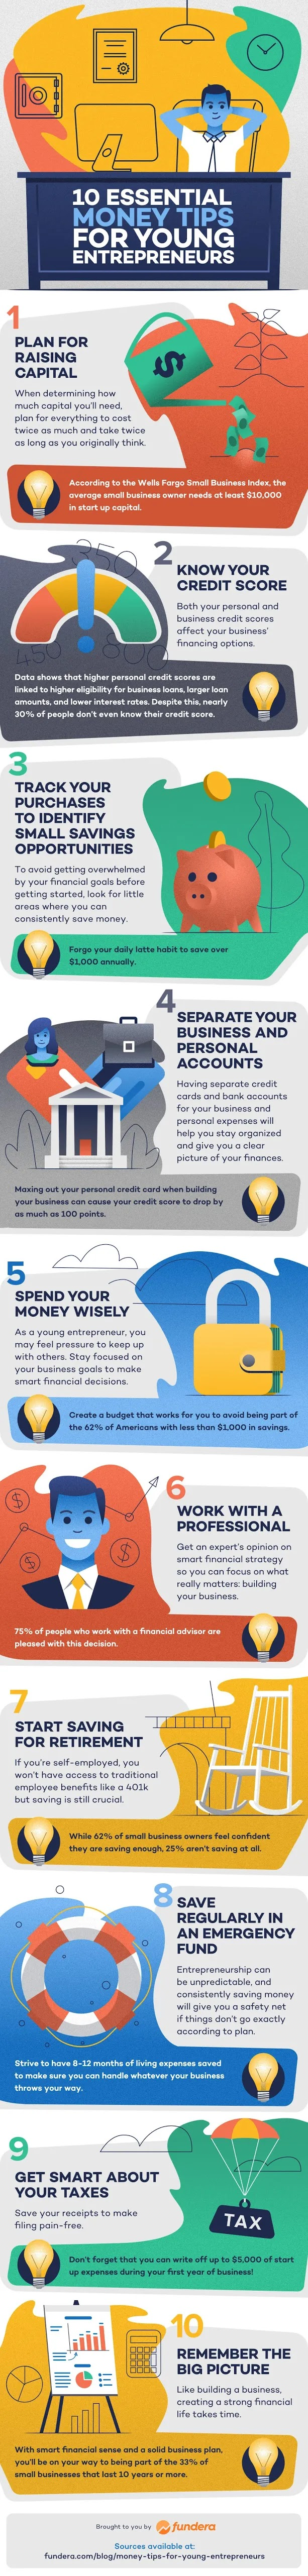 10 Essential Money tipd for Young Entrepreneurs #infographic